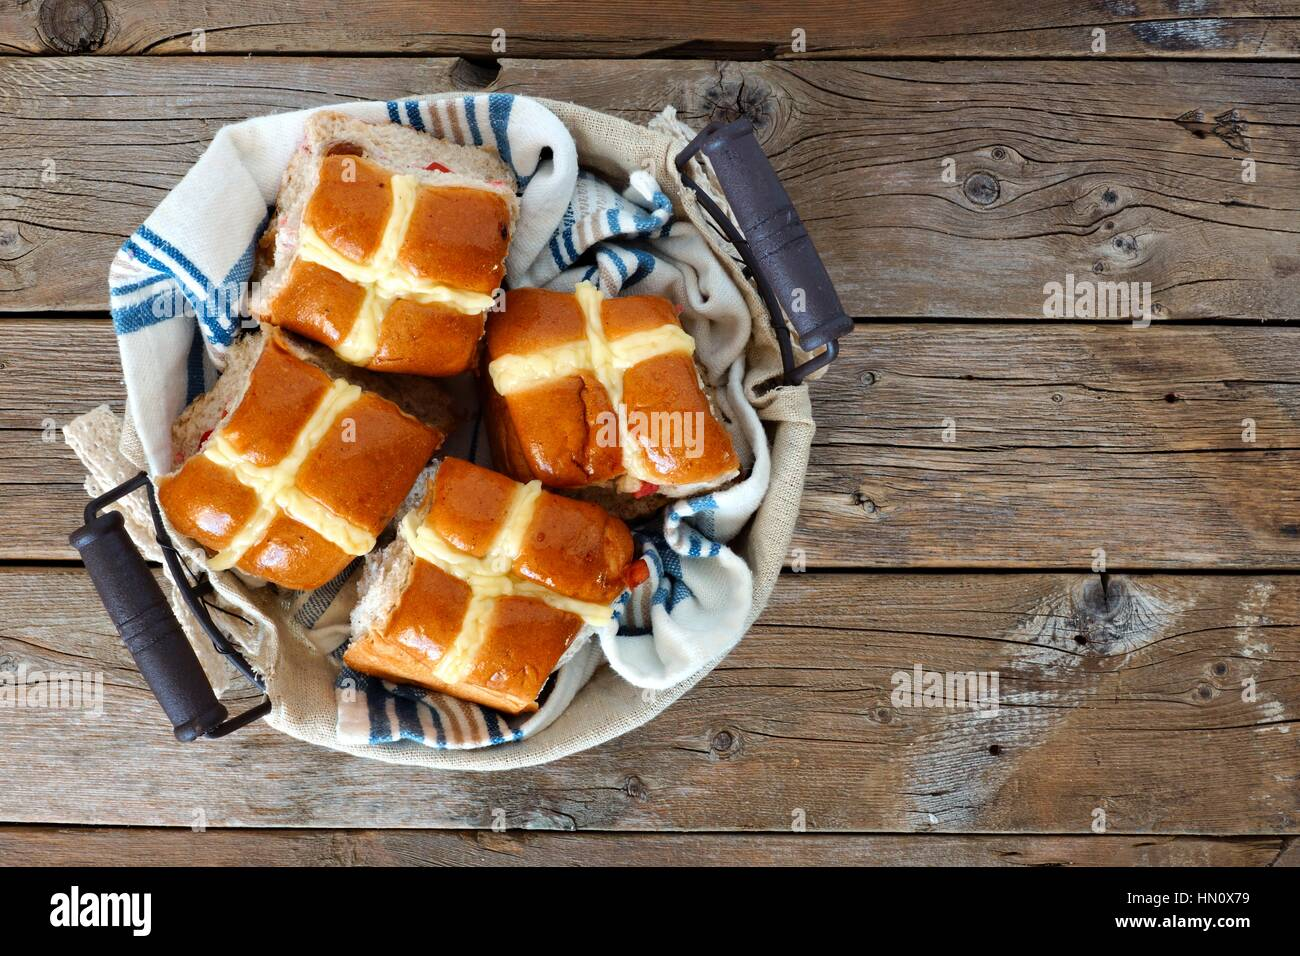 Easter Hot Cross Buns in a basket, downward view on a rustic wood background - Stock Image